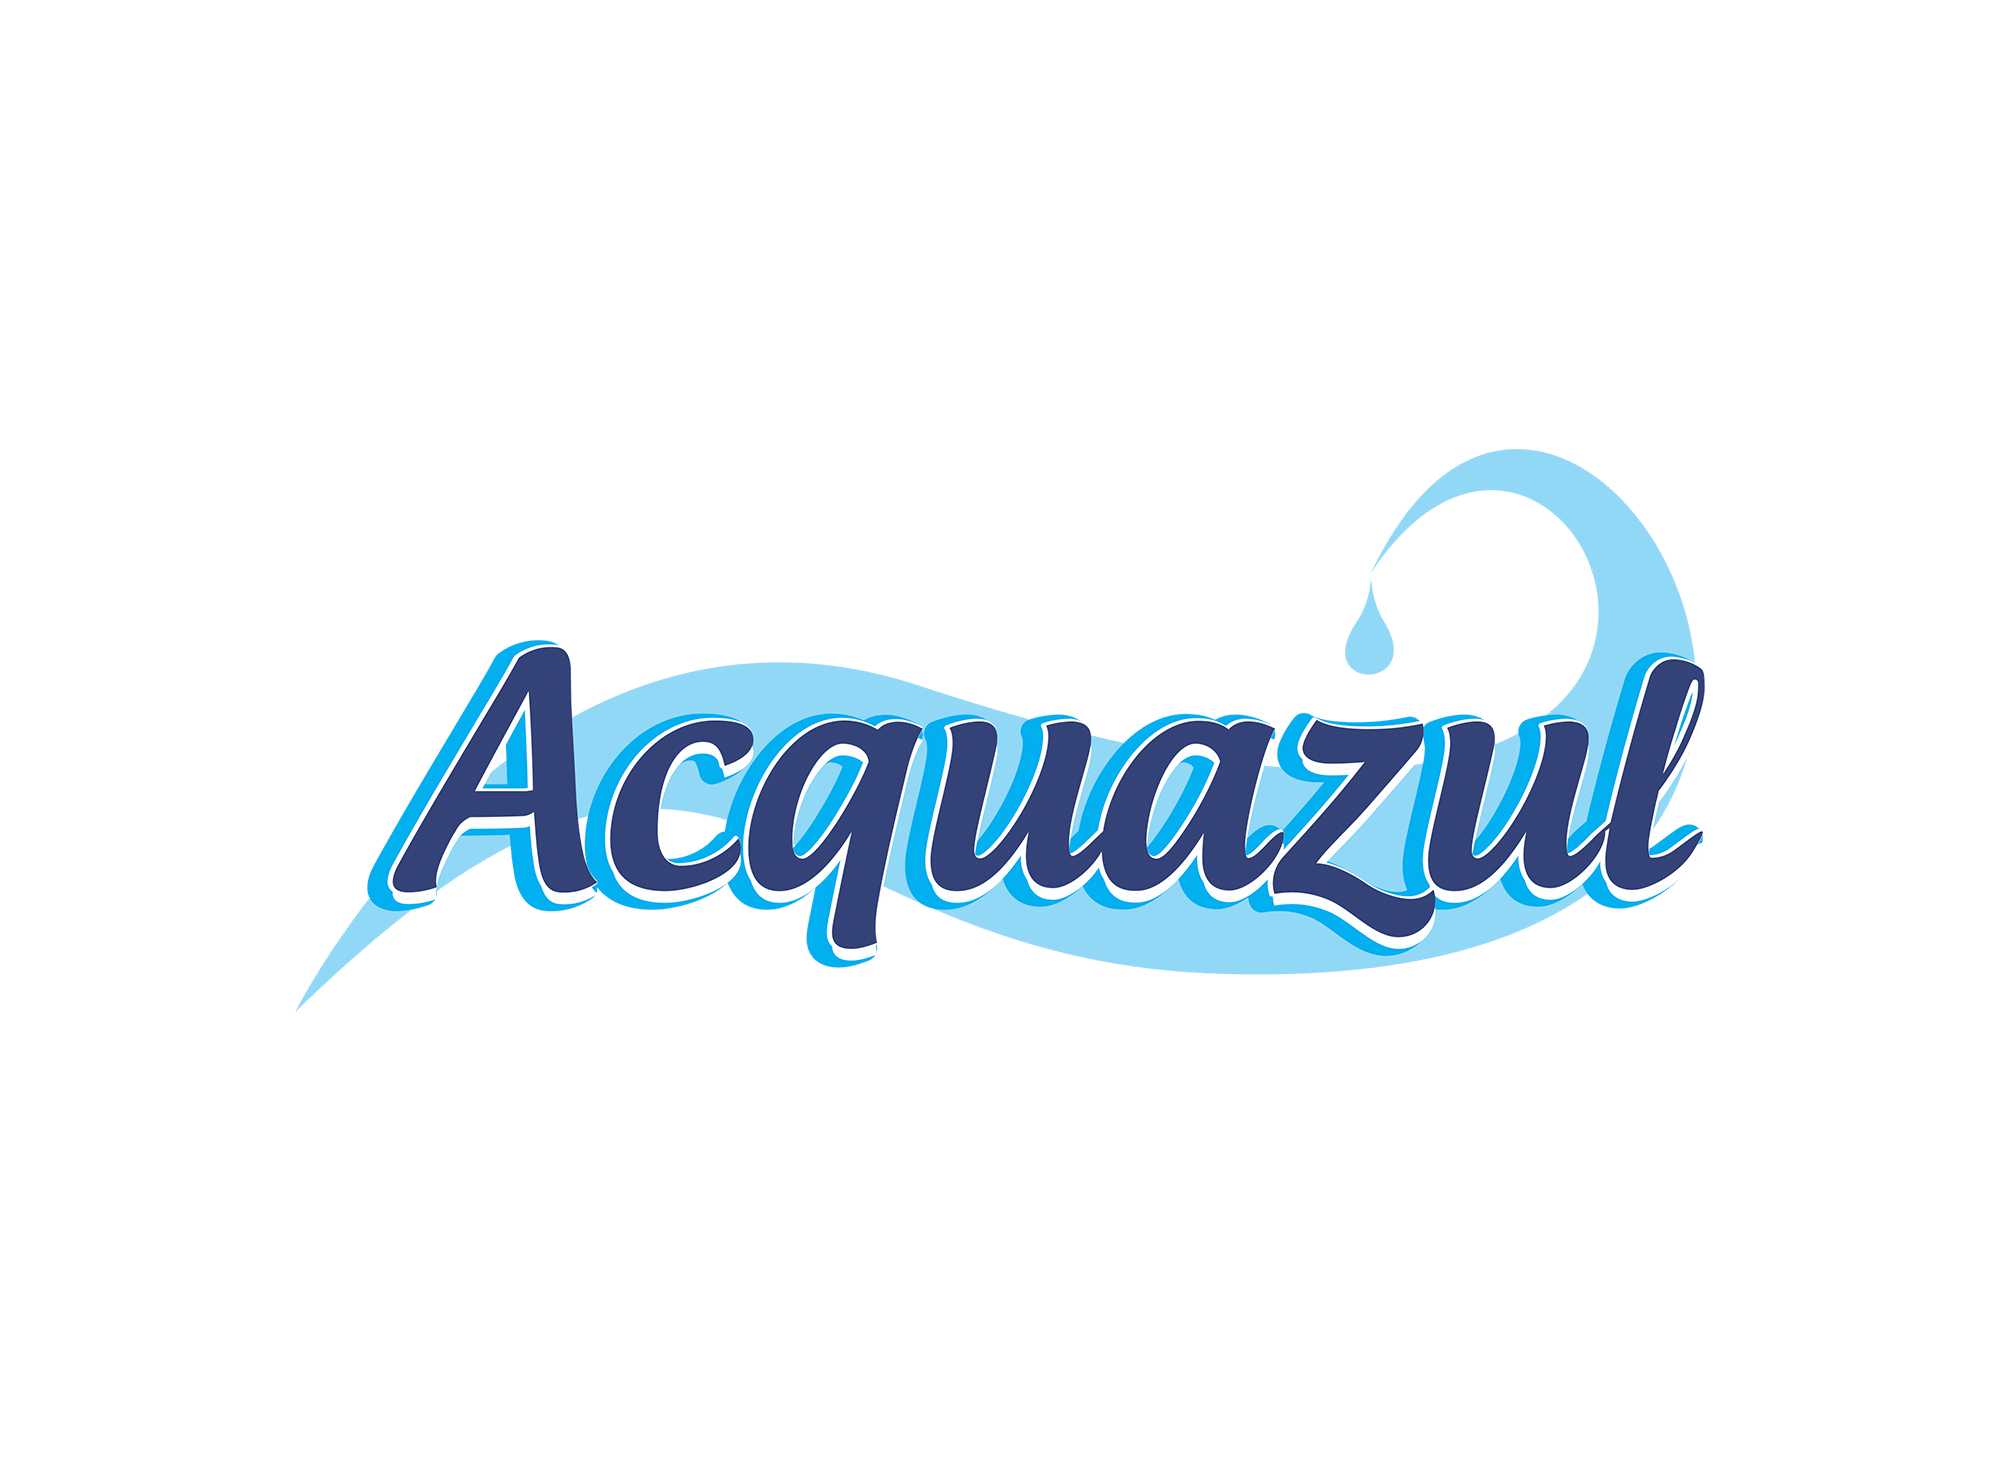 acquazulj-clientes-atendidos-agencia-diretriz-digital-marketing-fortaleza